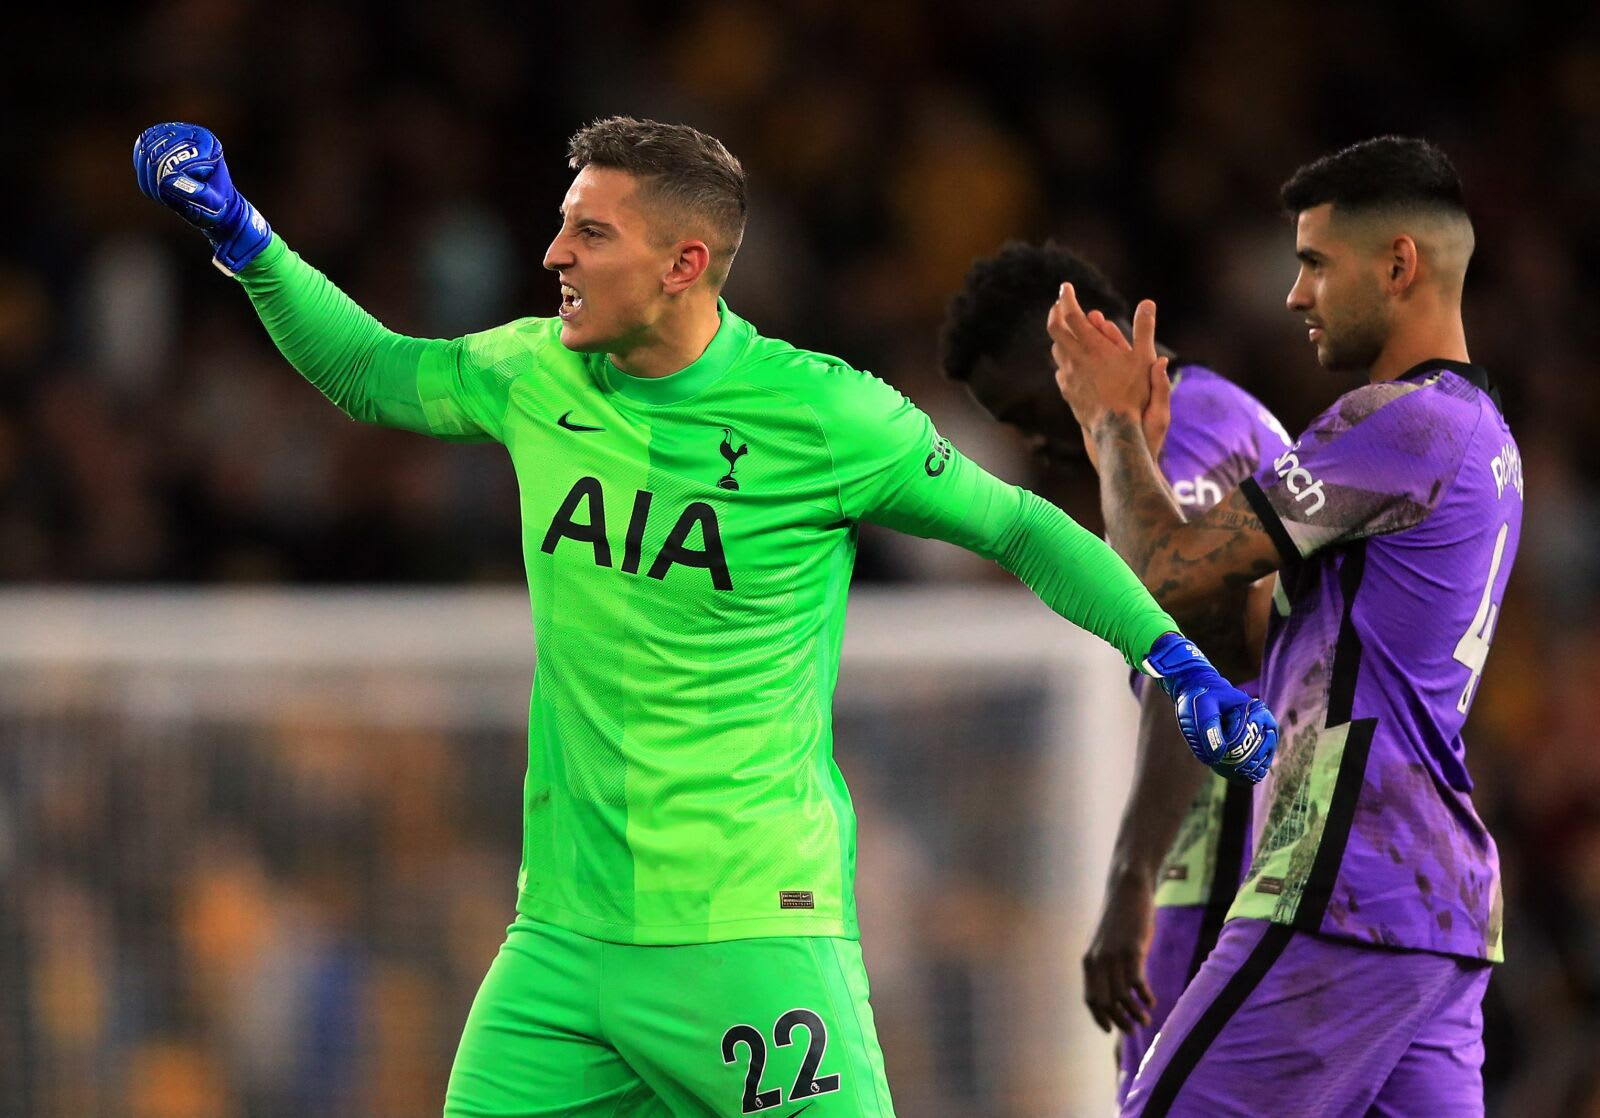 Tottenham Hotspur's Italian goalkeeper Pierluigi Gollini celebrates after a penalty shoot out during the English League Cup third round football match between Wolverhampton Wanderers and Tottenham Hotspur at the Molineux stadium in Wolverhampton, central England on September